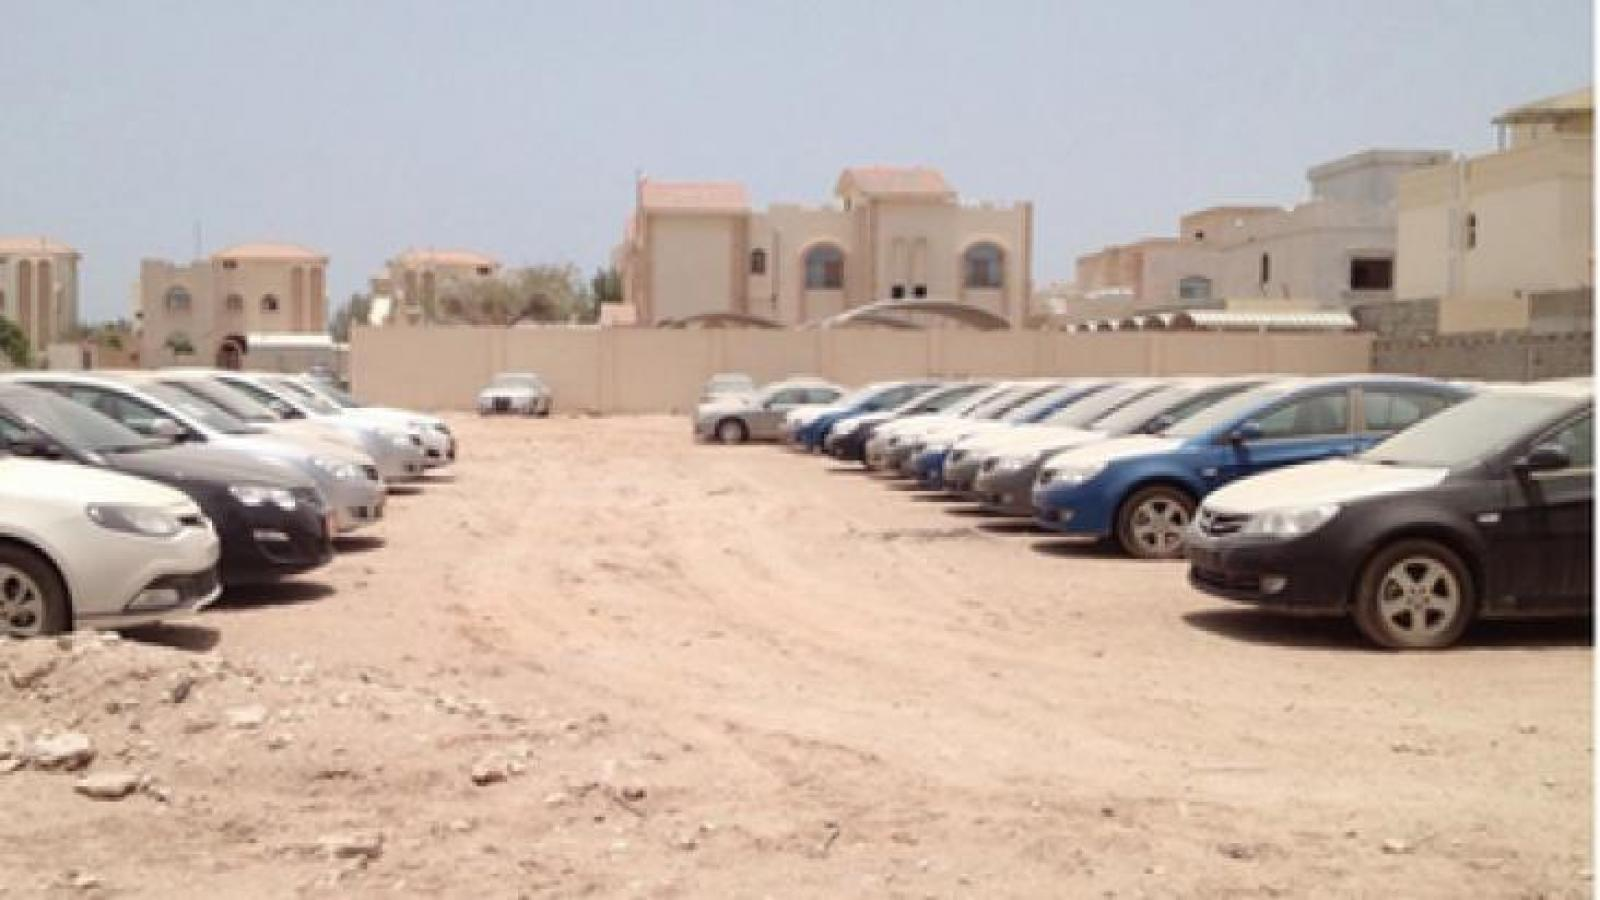 How to report an abandoned car in Qatar